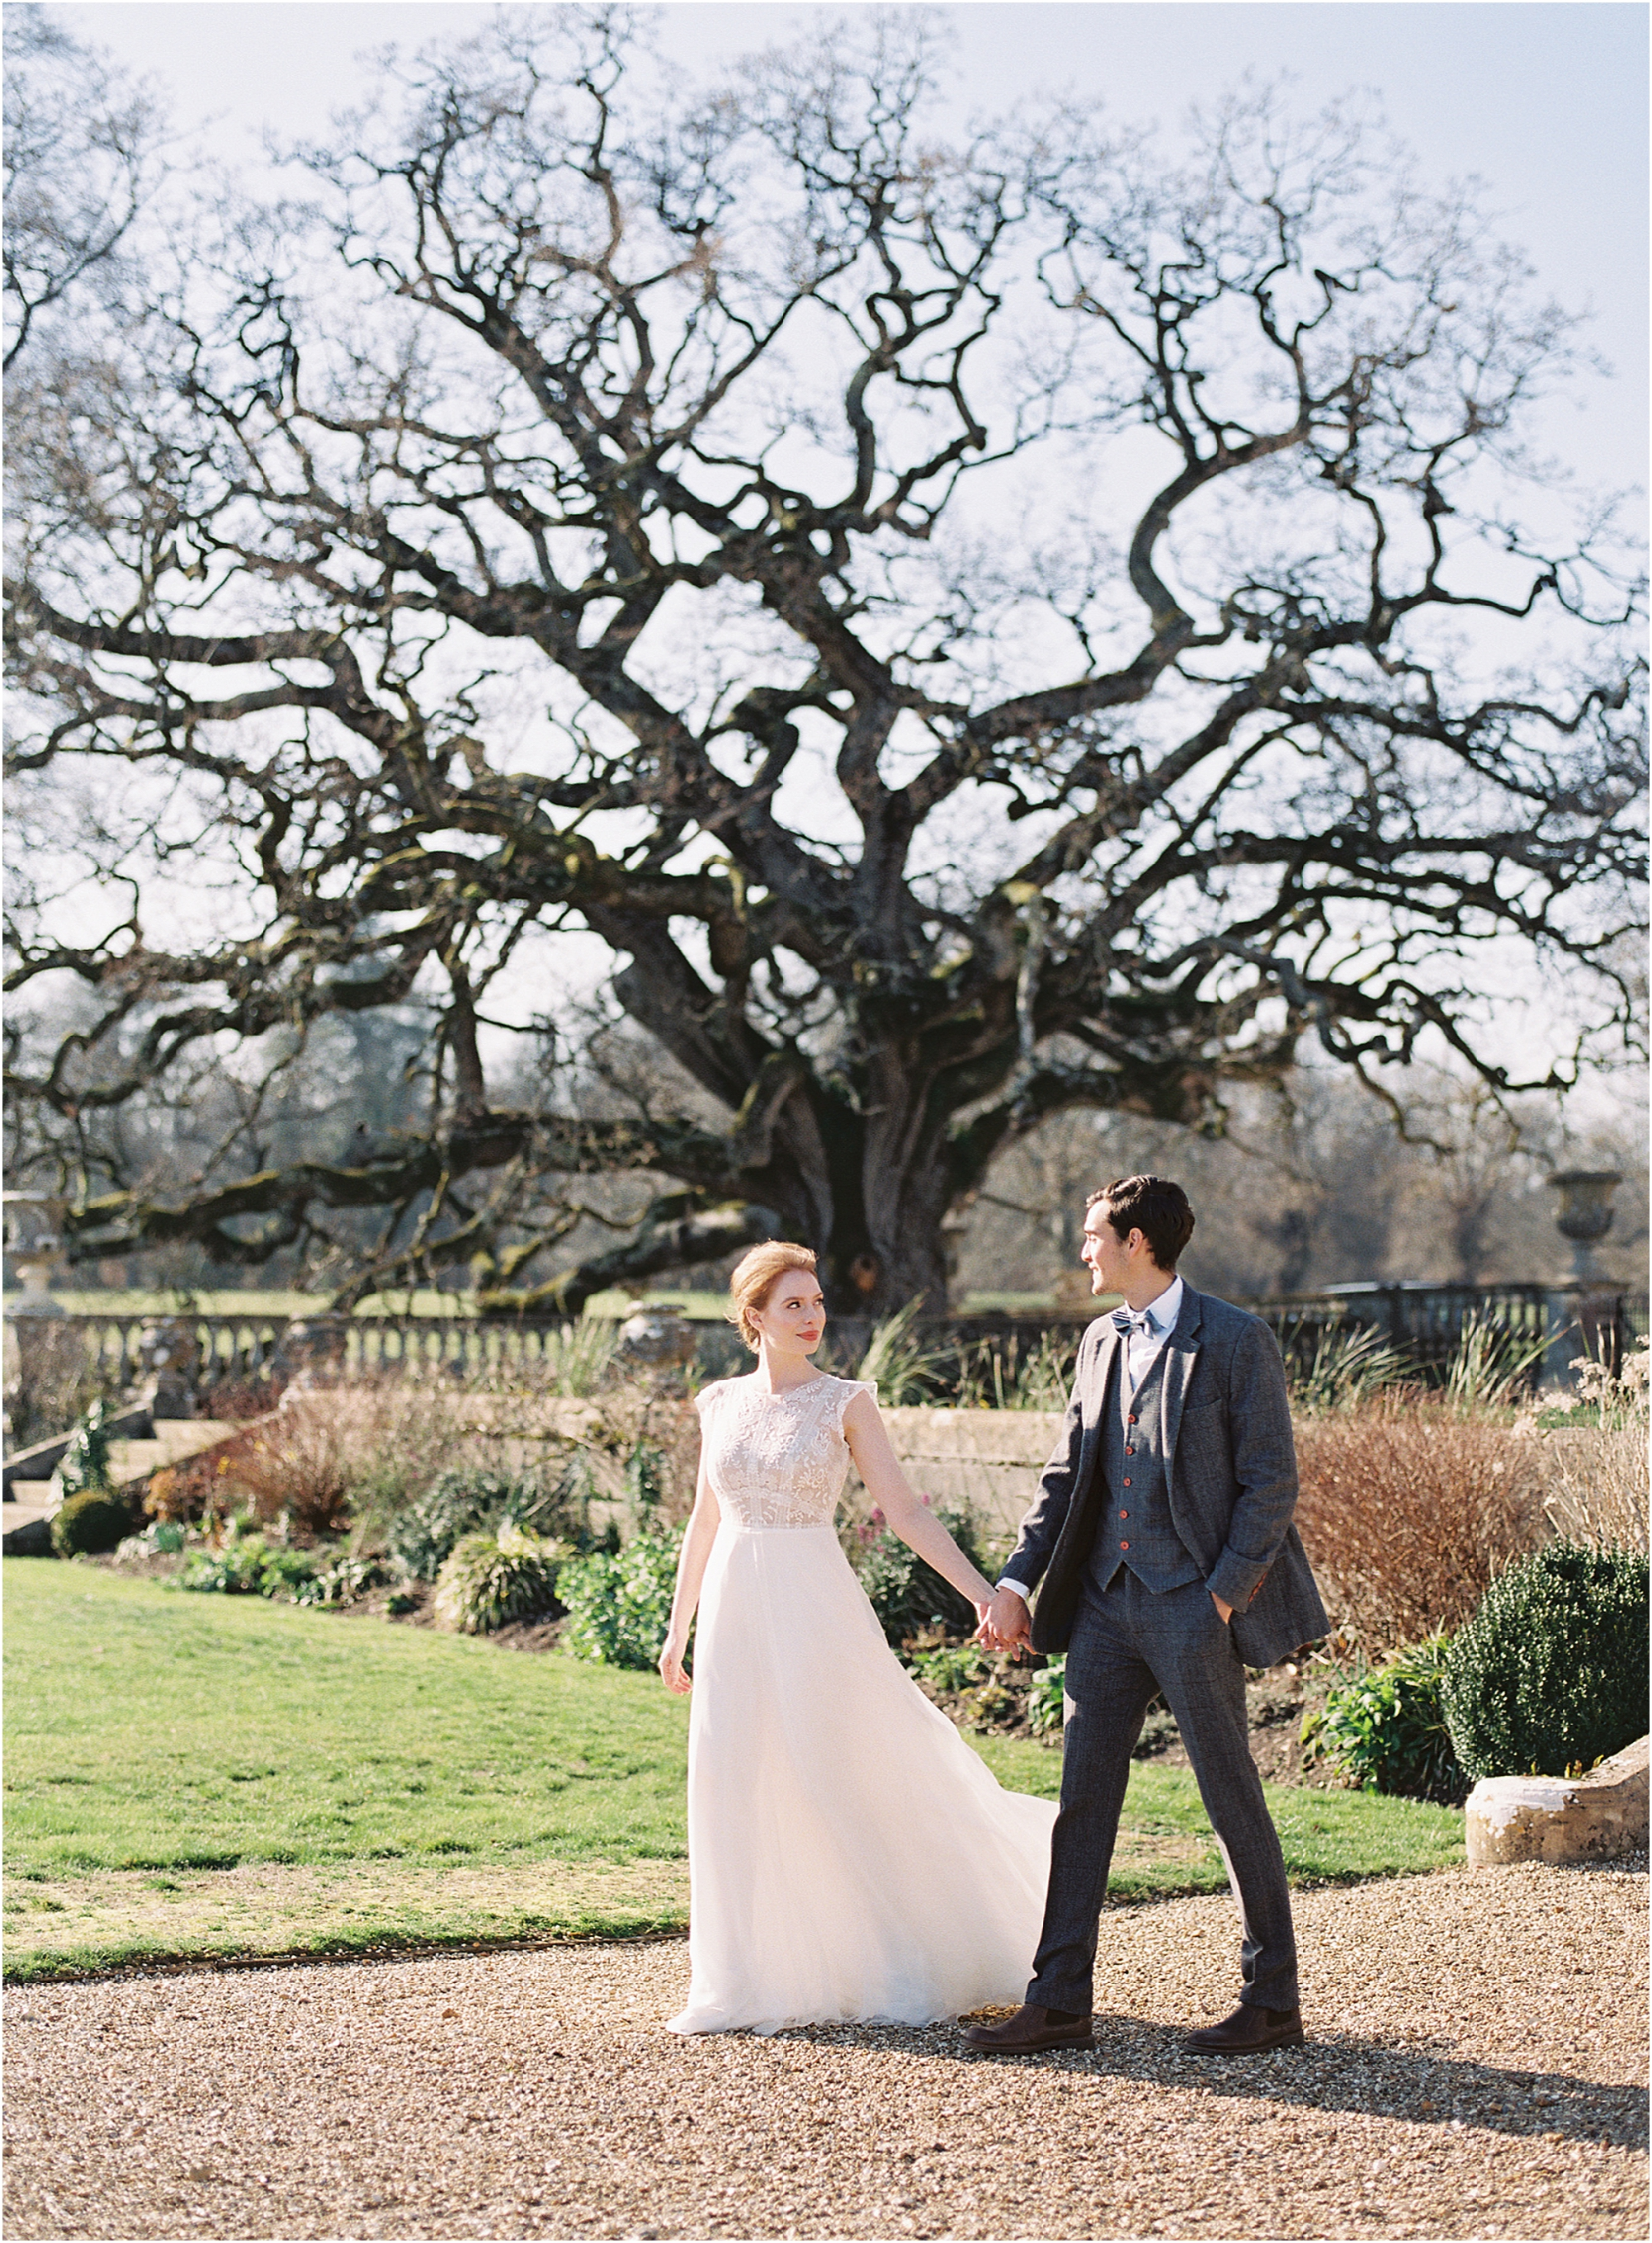 Wedding couple walking in the grounds of Somerley House